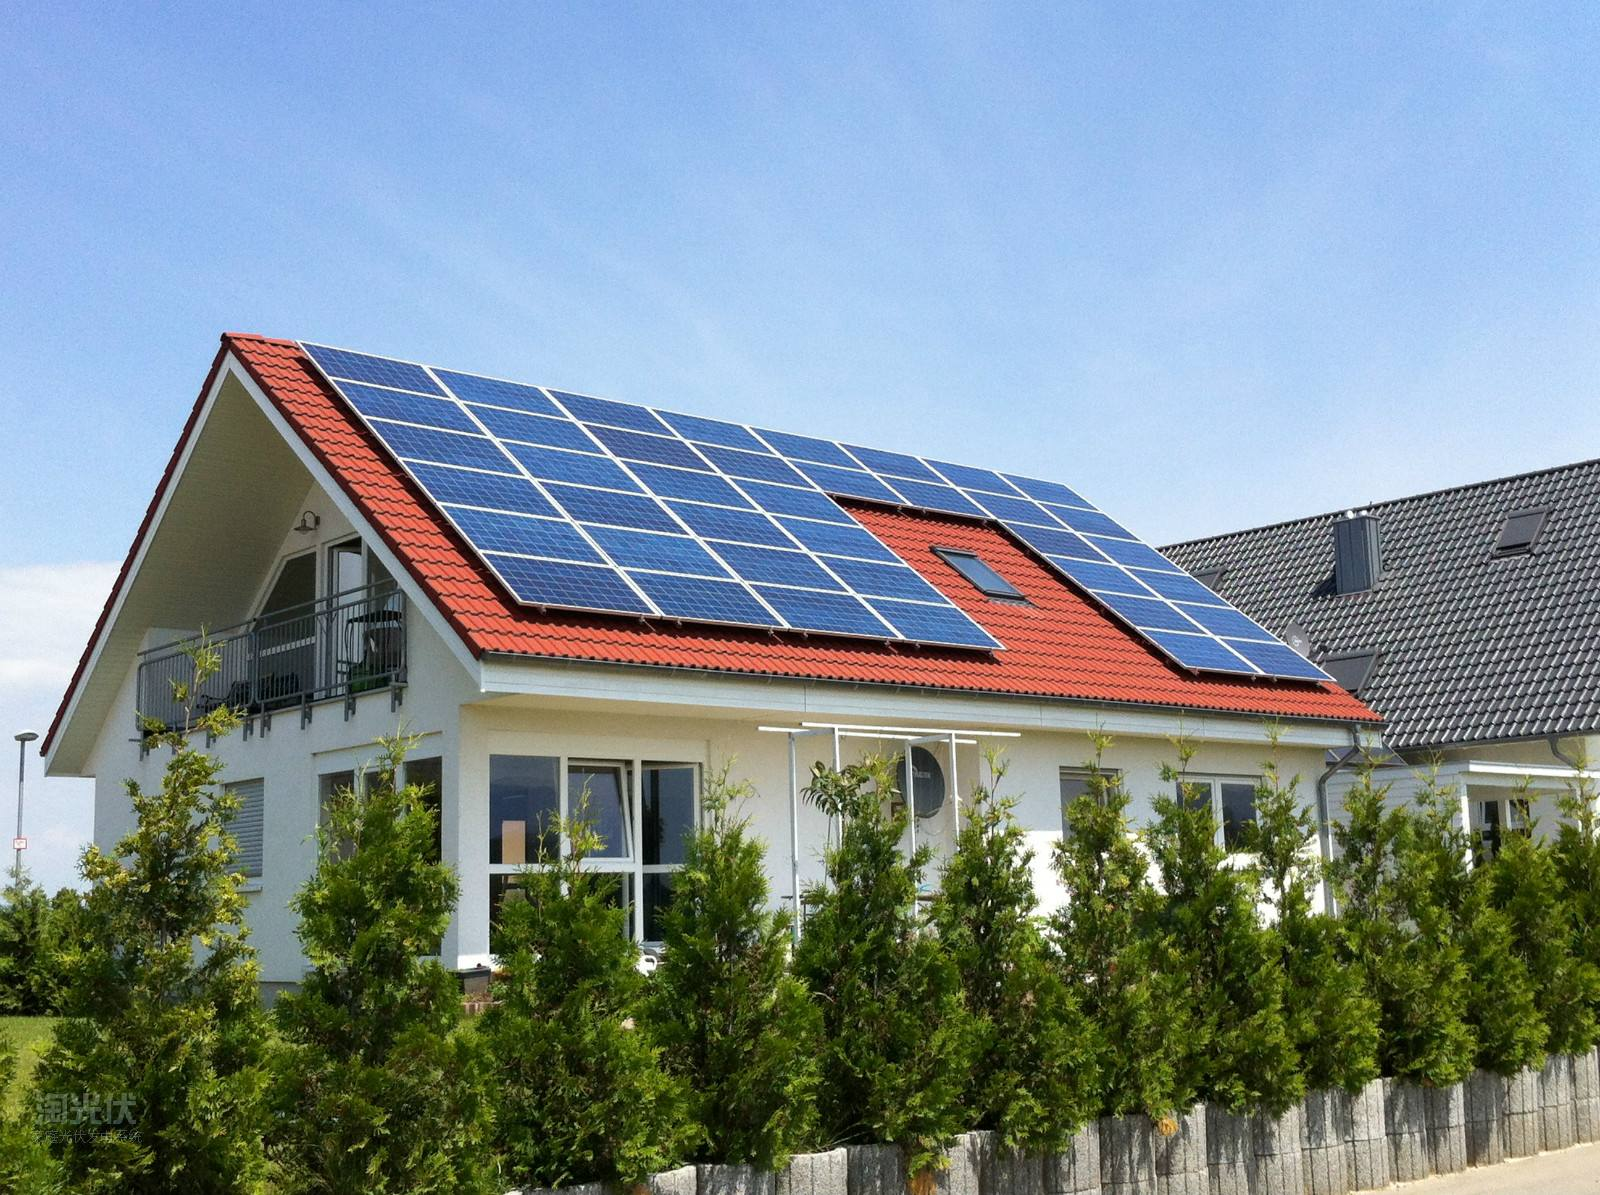 Little Knowledge About Photovoltaic System